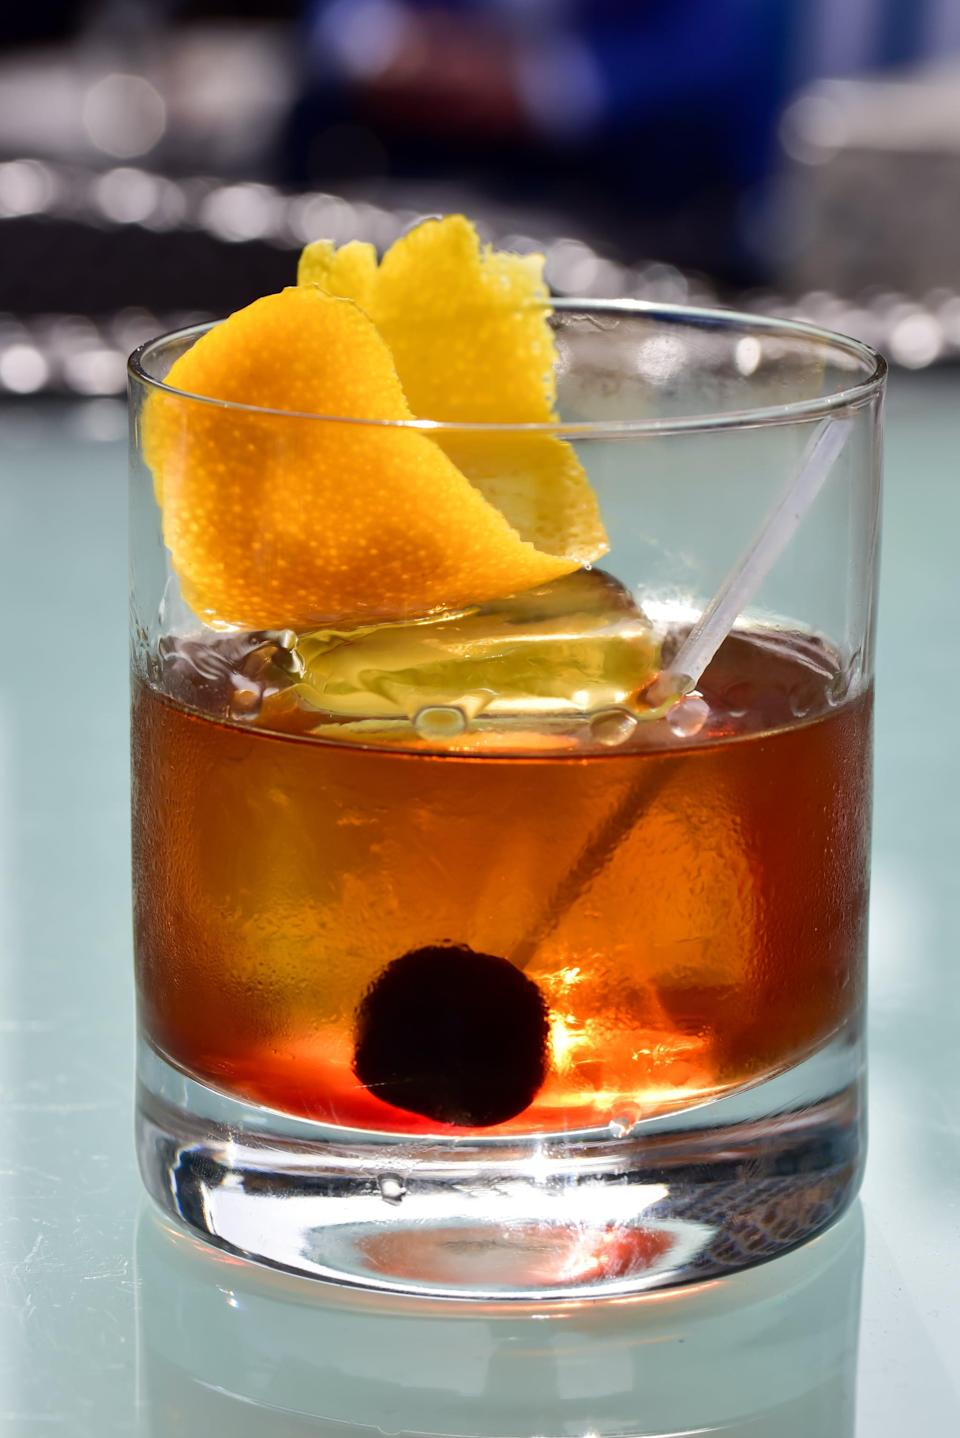 """<p>Close in proximity and drink preferences, New Jersey residents have the same hankering for Manhattans that New Yorkers do. This recipe is effortlessly timeless, so feel free to make it any day or on any occasion. Cheers!</p> <p><strong>Get the recipe</strong>: <a href=""""https://www.popsugar.com/buy?url=https%3A%2F%2Fwww.foodnetwork.com%2Frecipes%2Fted-allen%2Fclassic-manhattan-cocktail-recipe-3381462&p_name=Manhattan&retailer=foodnetwork.com&evar1=yum%3Aus&evar9=47471653&evar98=https%3A%2F%2Fwww.popsugar.com%2Ffood%2Fphoto-gallery%2F47471653%2Fimage%2F47474656%2FNew-Jersey-Manhattan&list1=cocktails%2Cdrinks%2Calcohol%2Crecipes&prop13=api&pdata=1"""" class=""""link rapid-noclick-resp"""" rel=""""nofollow noopener"""" target=""""_blank"""" data-ylk=""""slk:Manhattan"""">Manhattan</a></p>"""